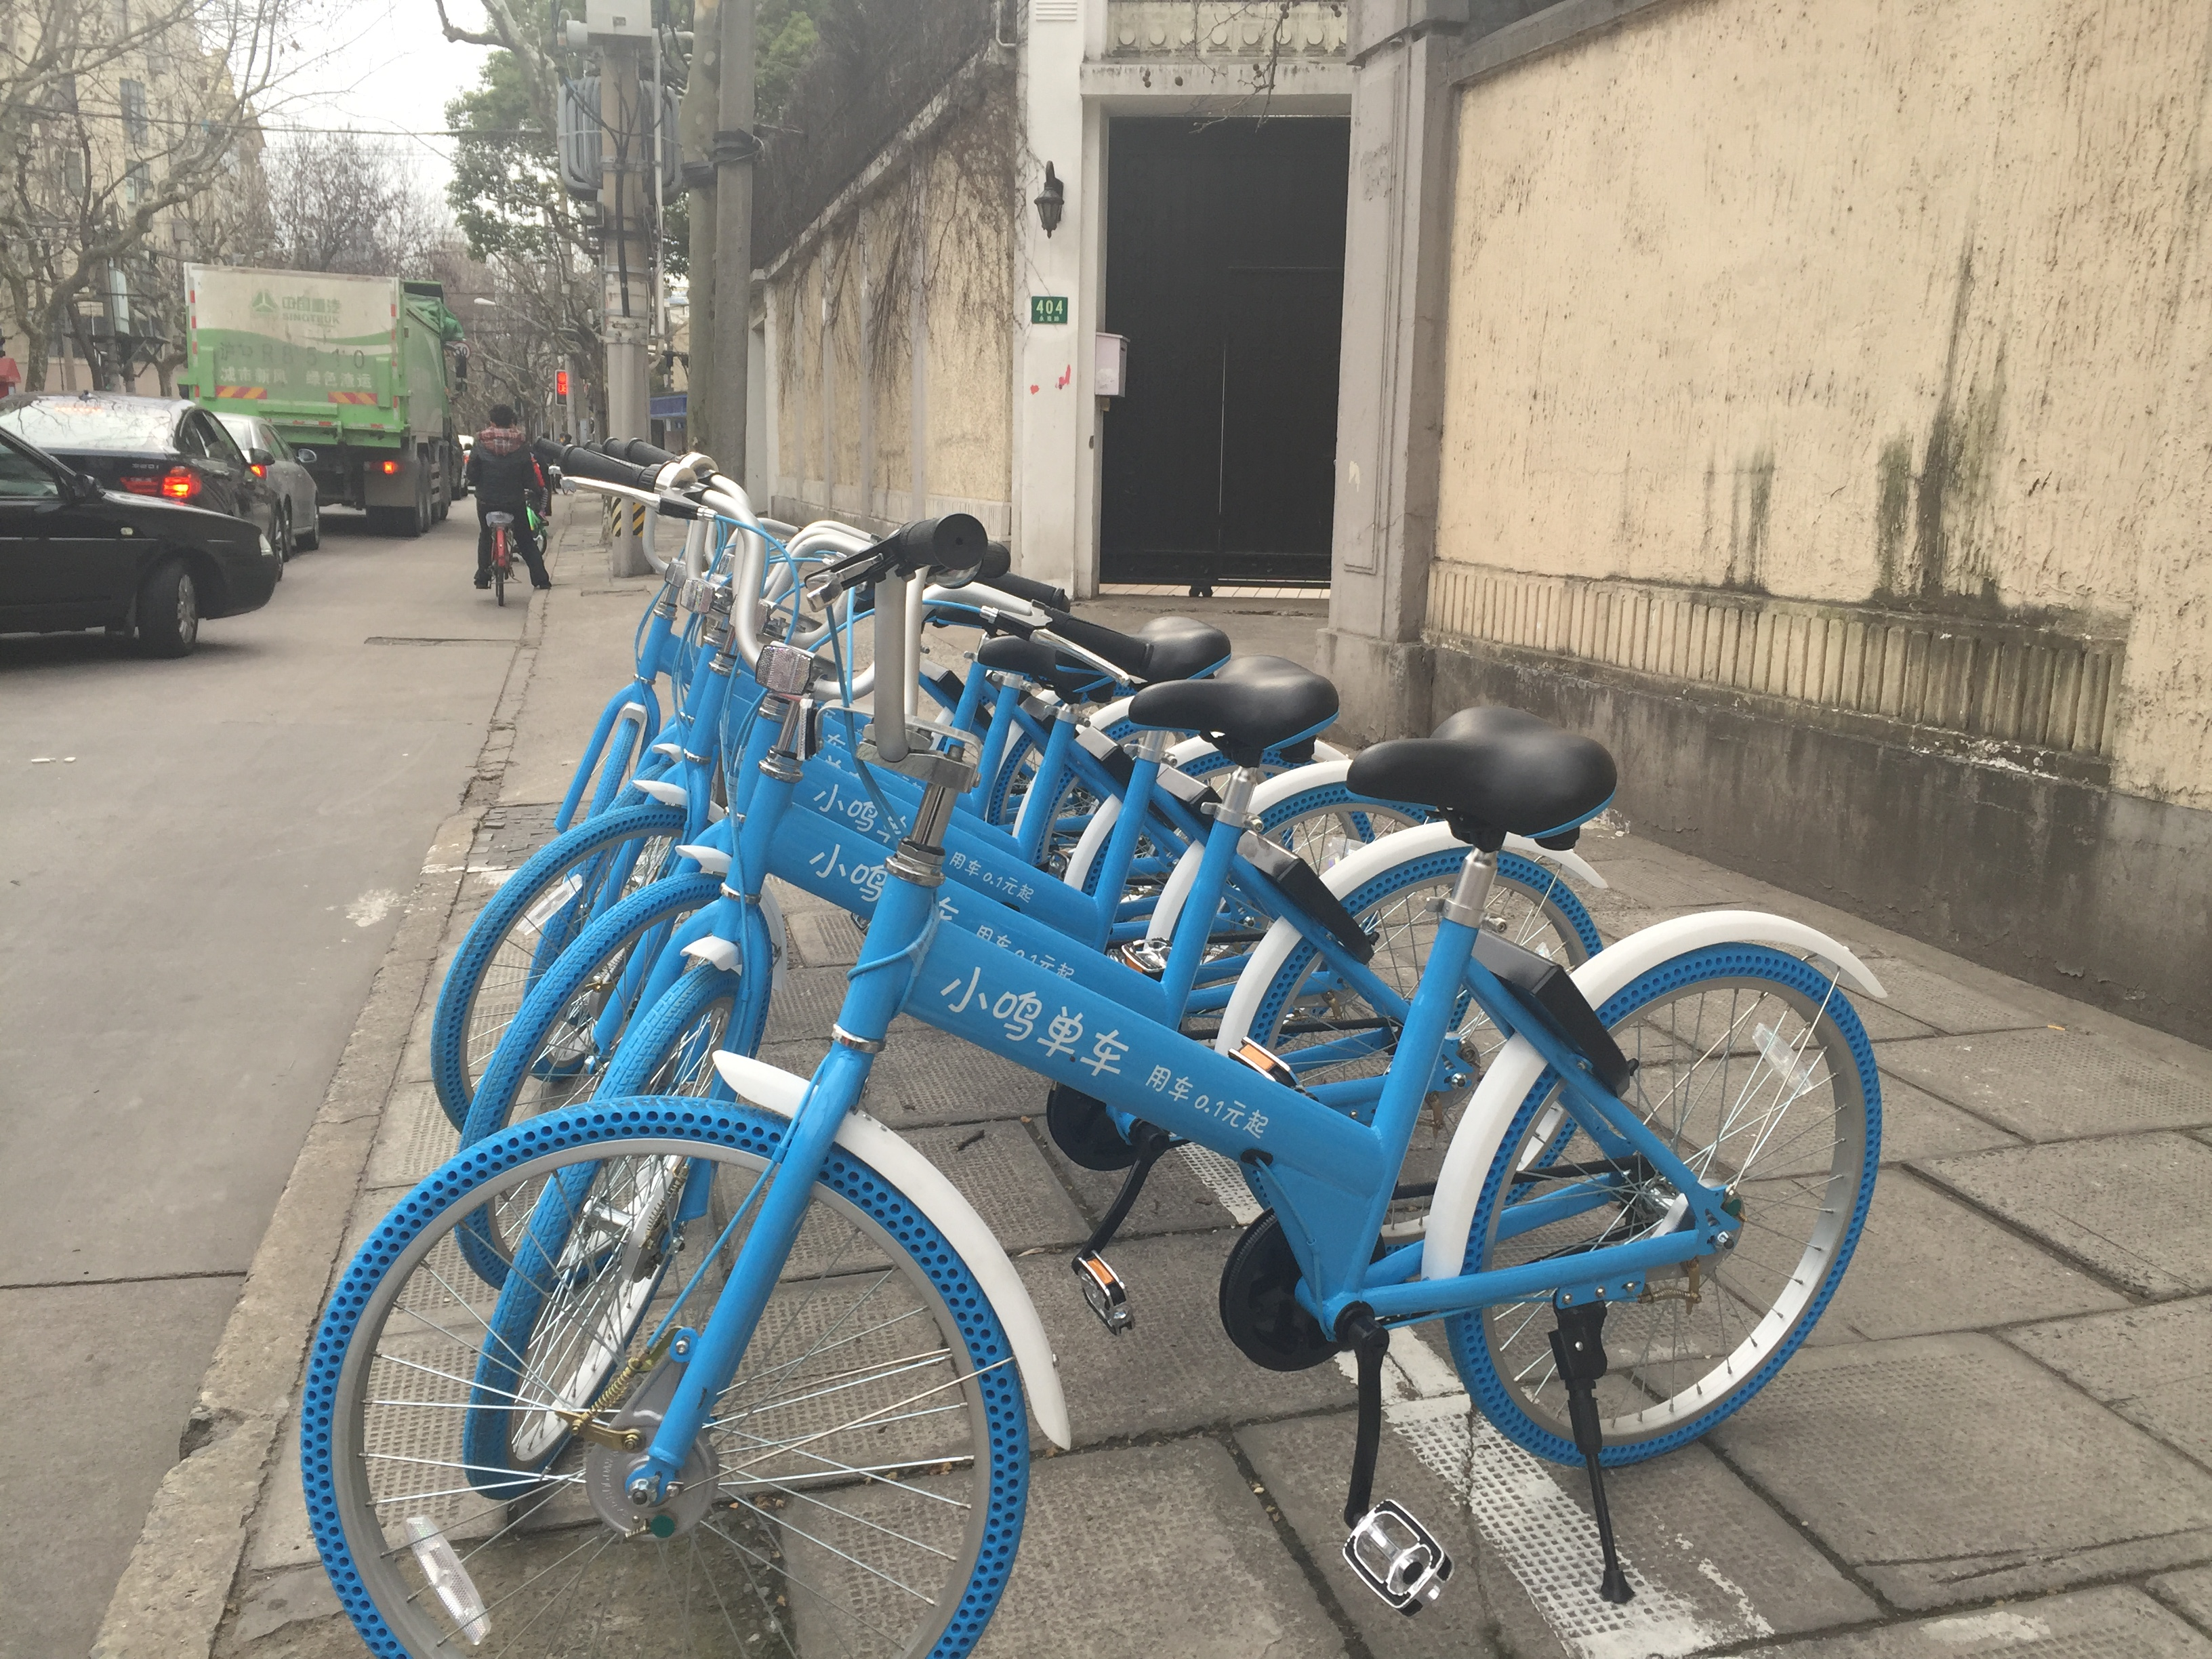 Taking a spin on Shanghai's colorful shared cycles